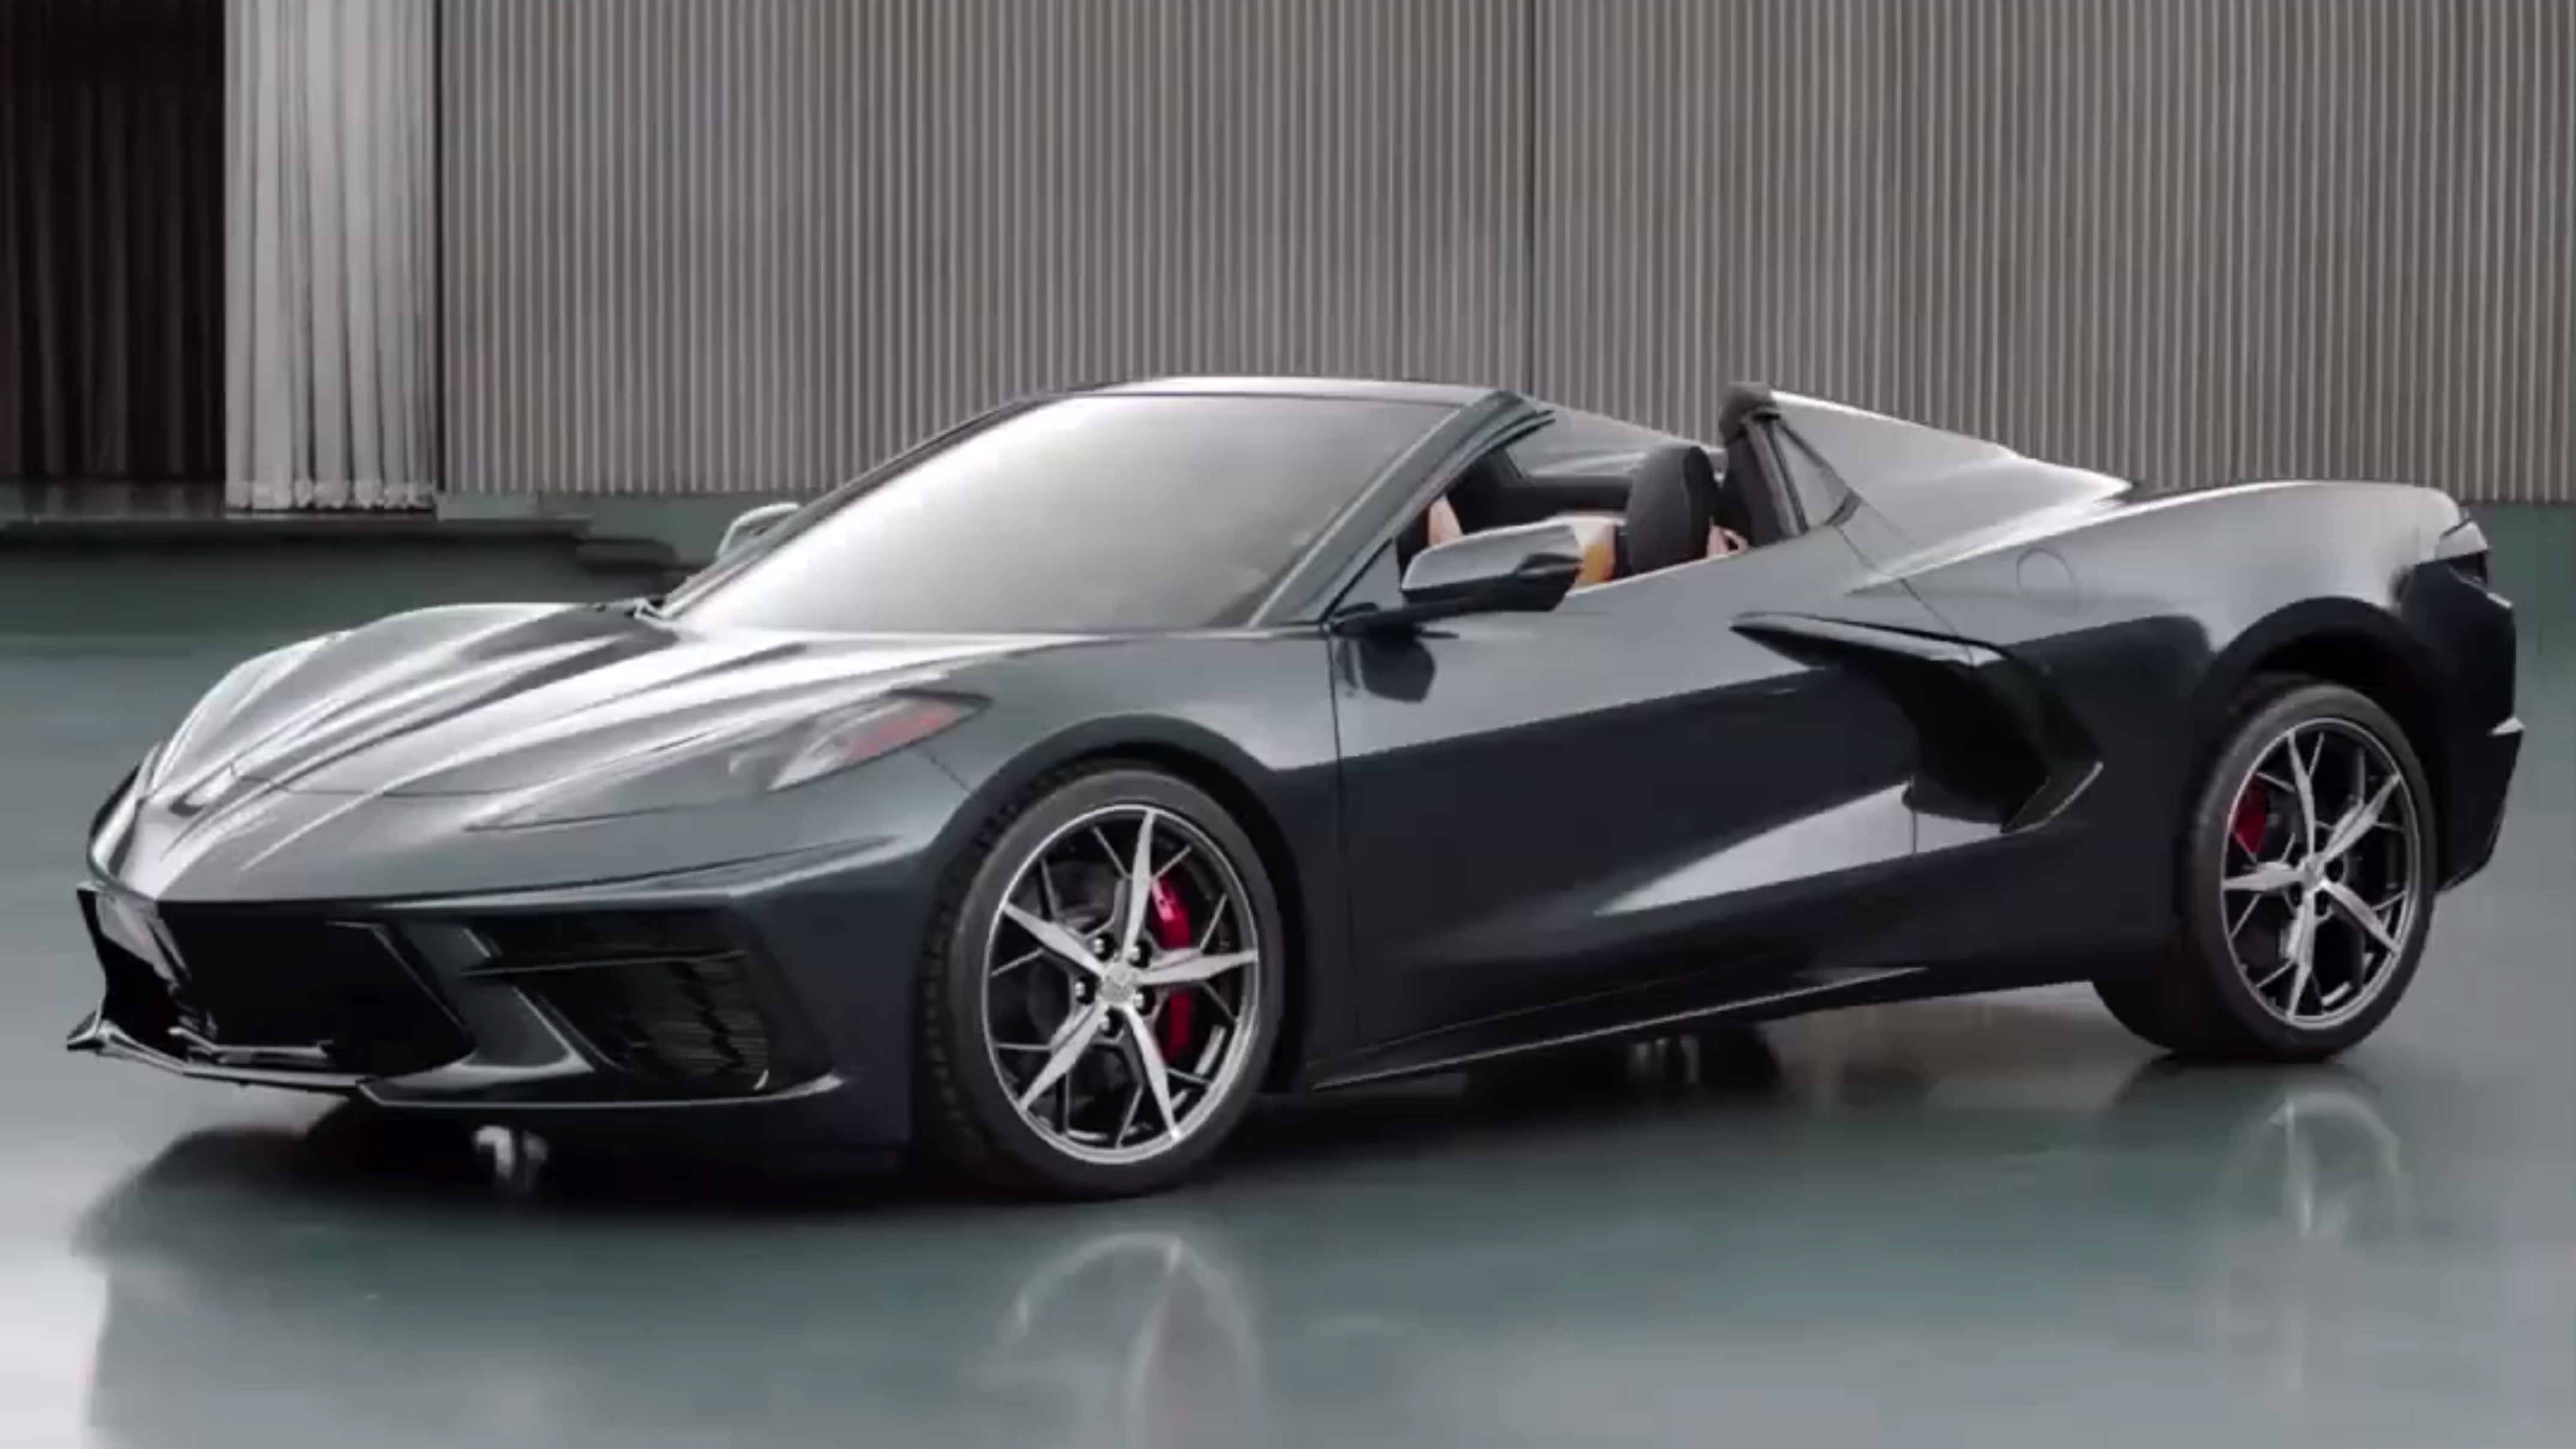 Chevy Corvette C8 Convertible shown, coming soon | Autoblog